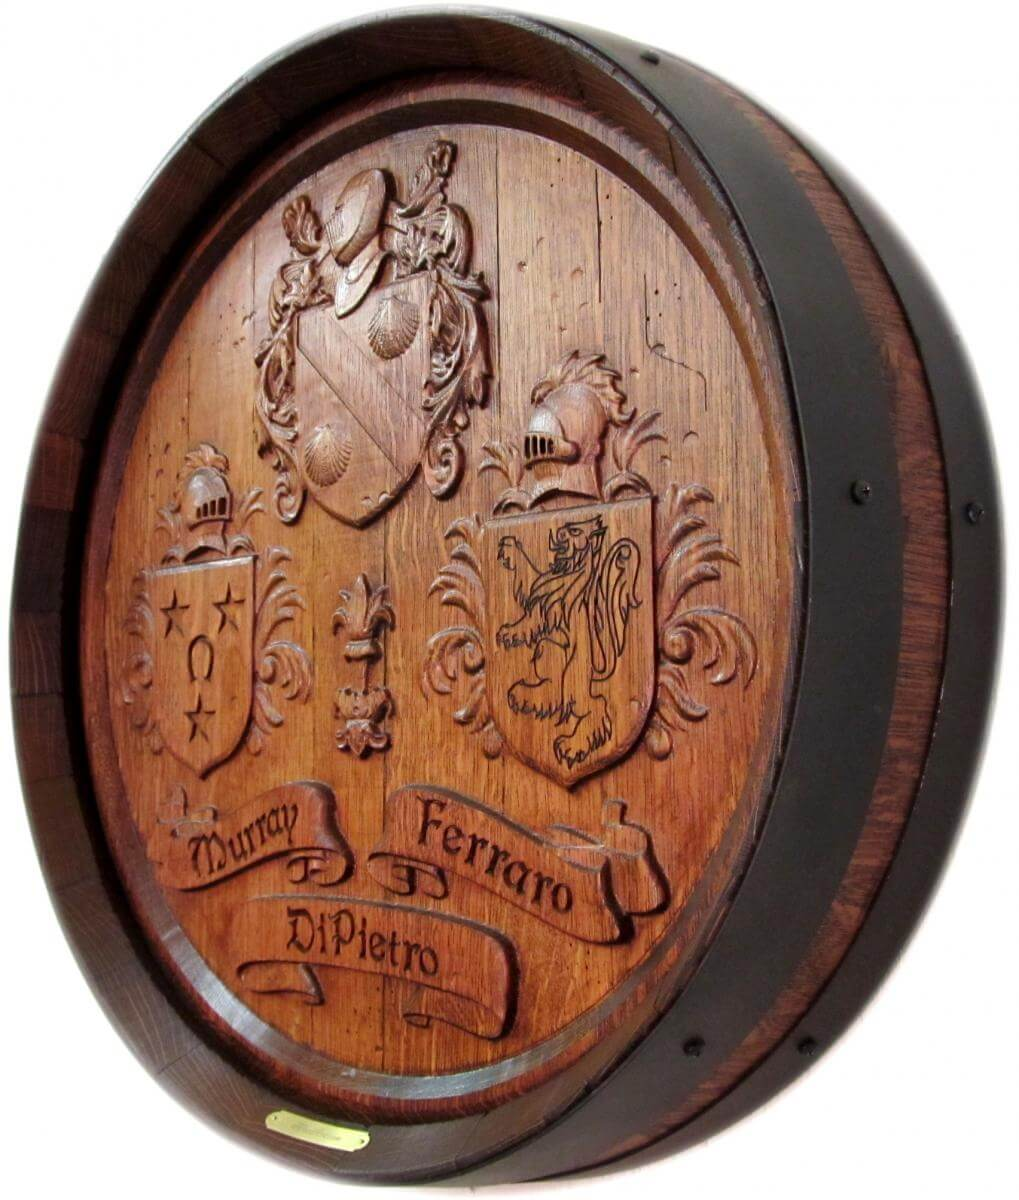 Ferraro Coats Of Arms barrel carving